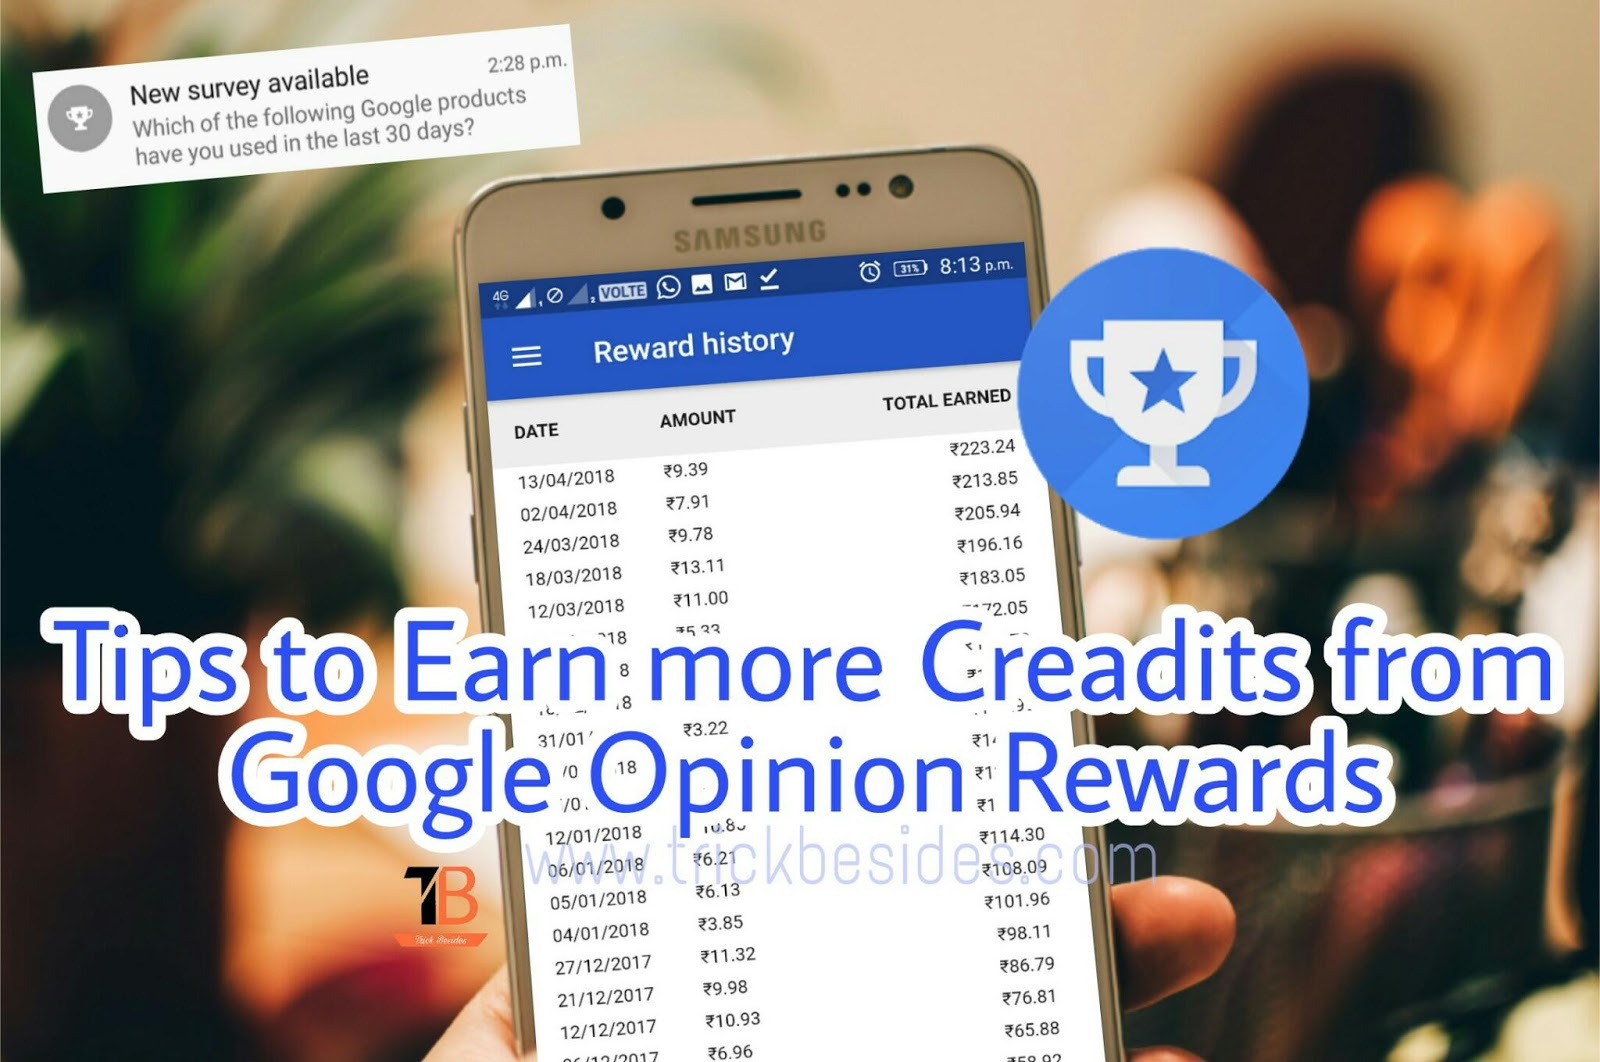 Tips to Earn more Play Store Credits with Google Opinion Rewards